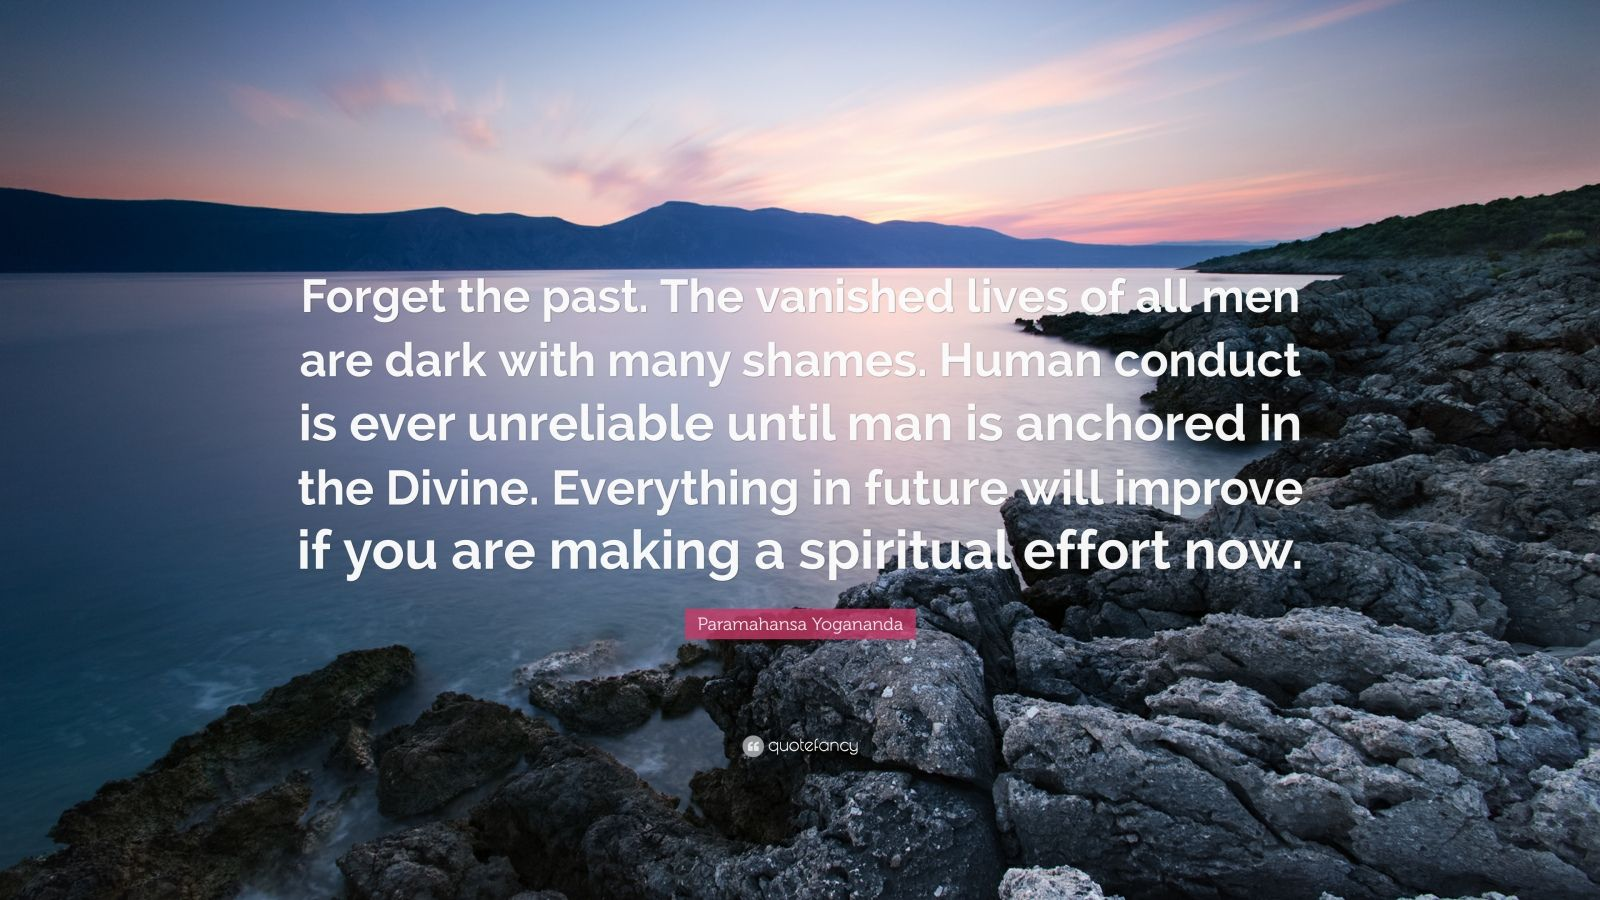 "Paramahansa Yogananda Quote: ""Forget the past. The vanished lives of all men are dark with many shames. Human conduct is ever unreliable until man is anchored in the Divine. Everything in future will improve if you are making a spiritual effort now."""